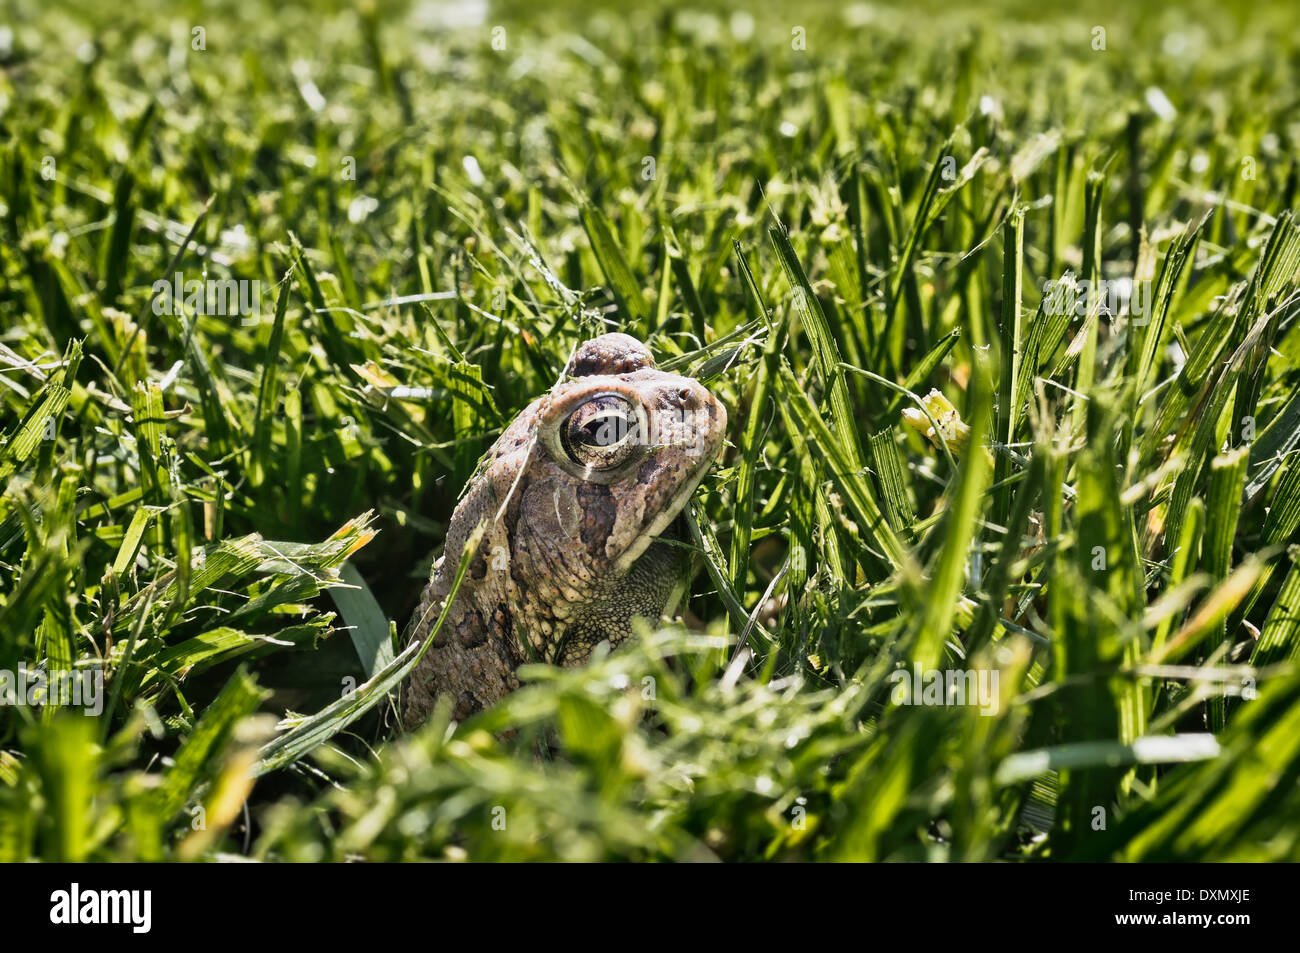 Toad peaking up from fresh cut grass after surviving lawn mowing Stock Photo